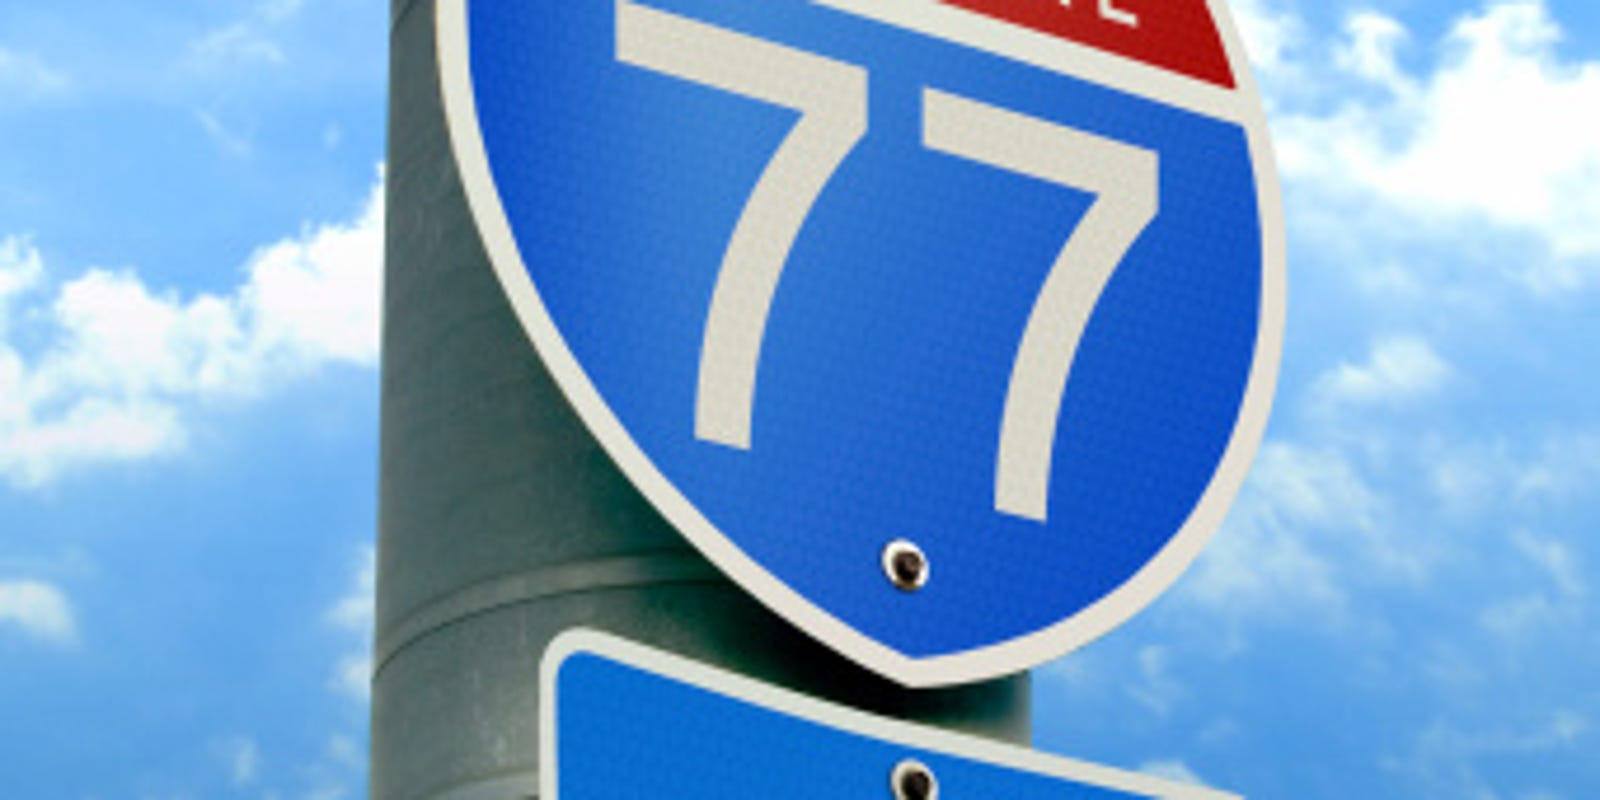 City Council votes in favor of I-77 toll lane project